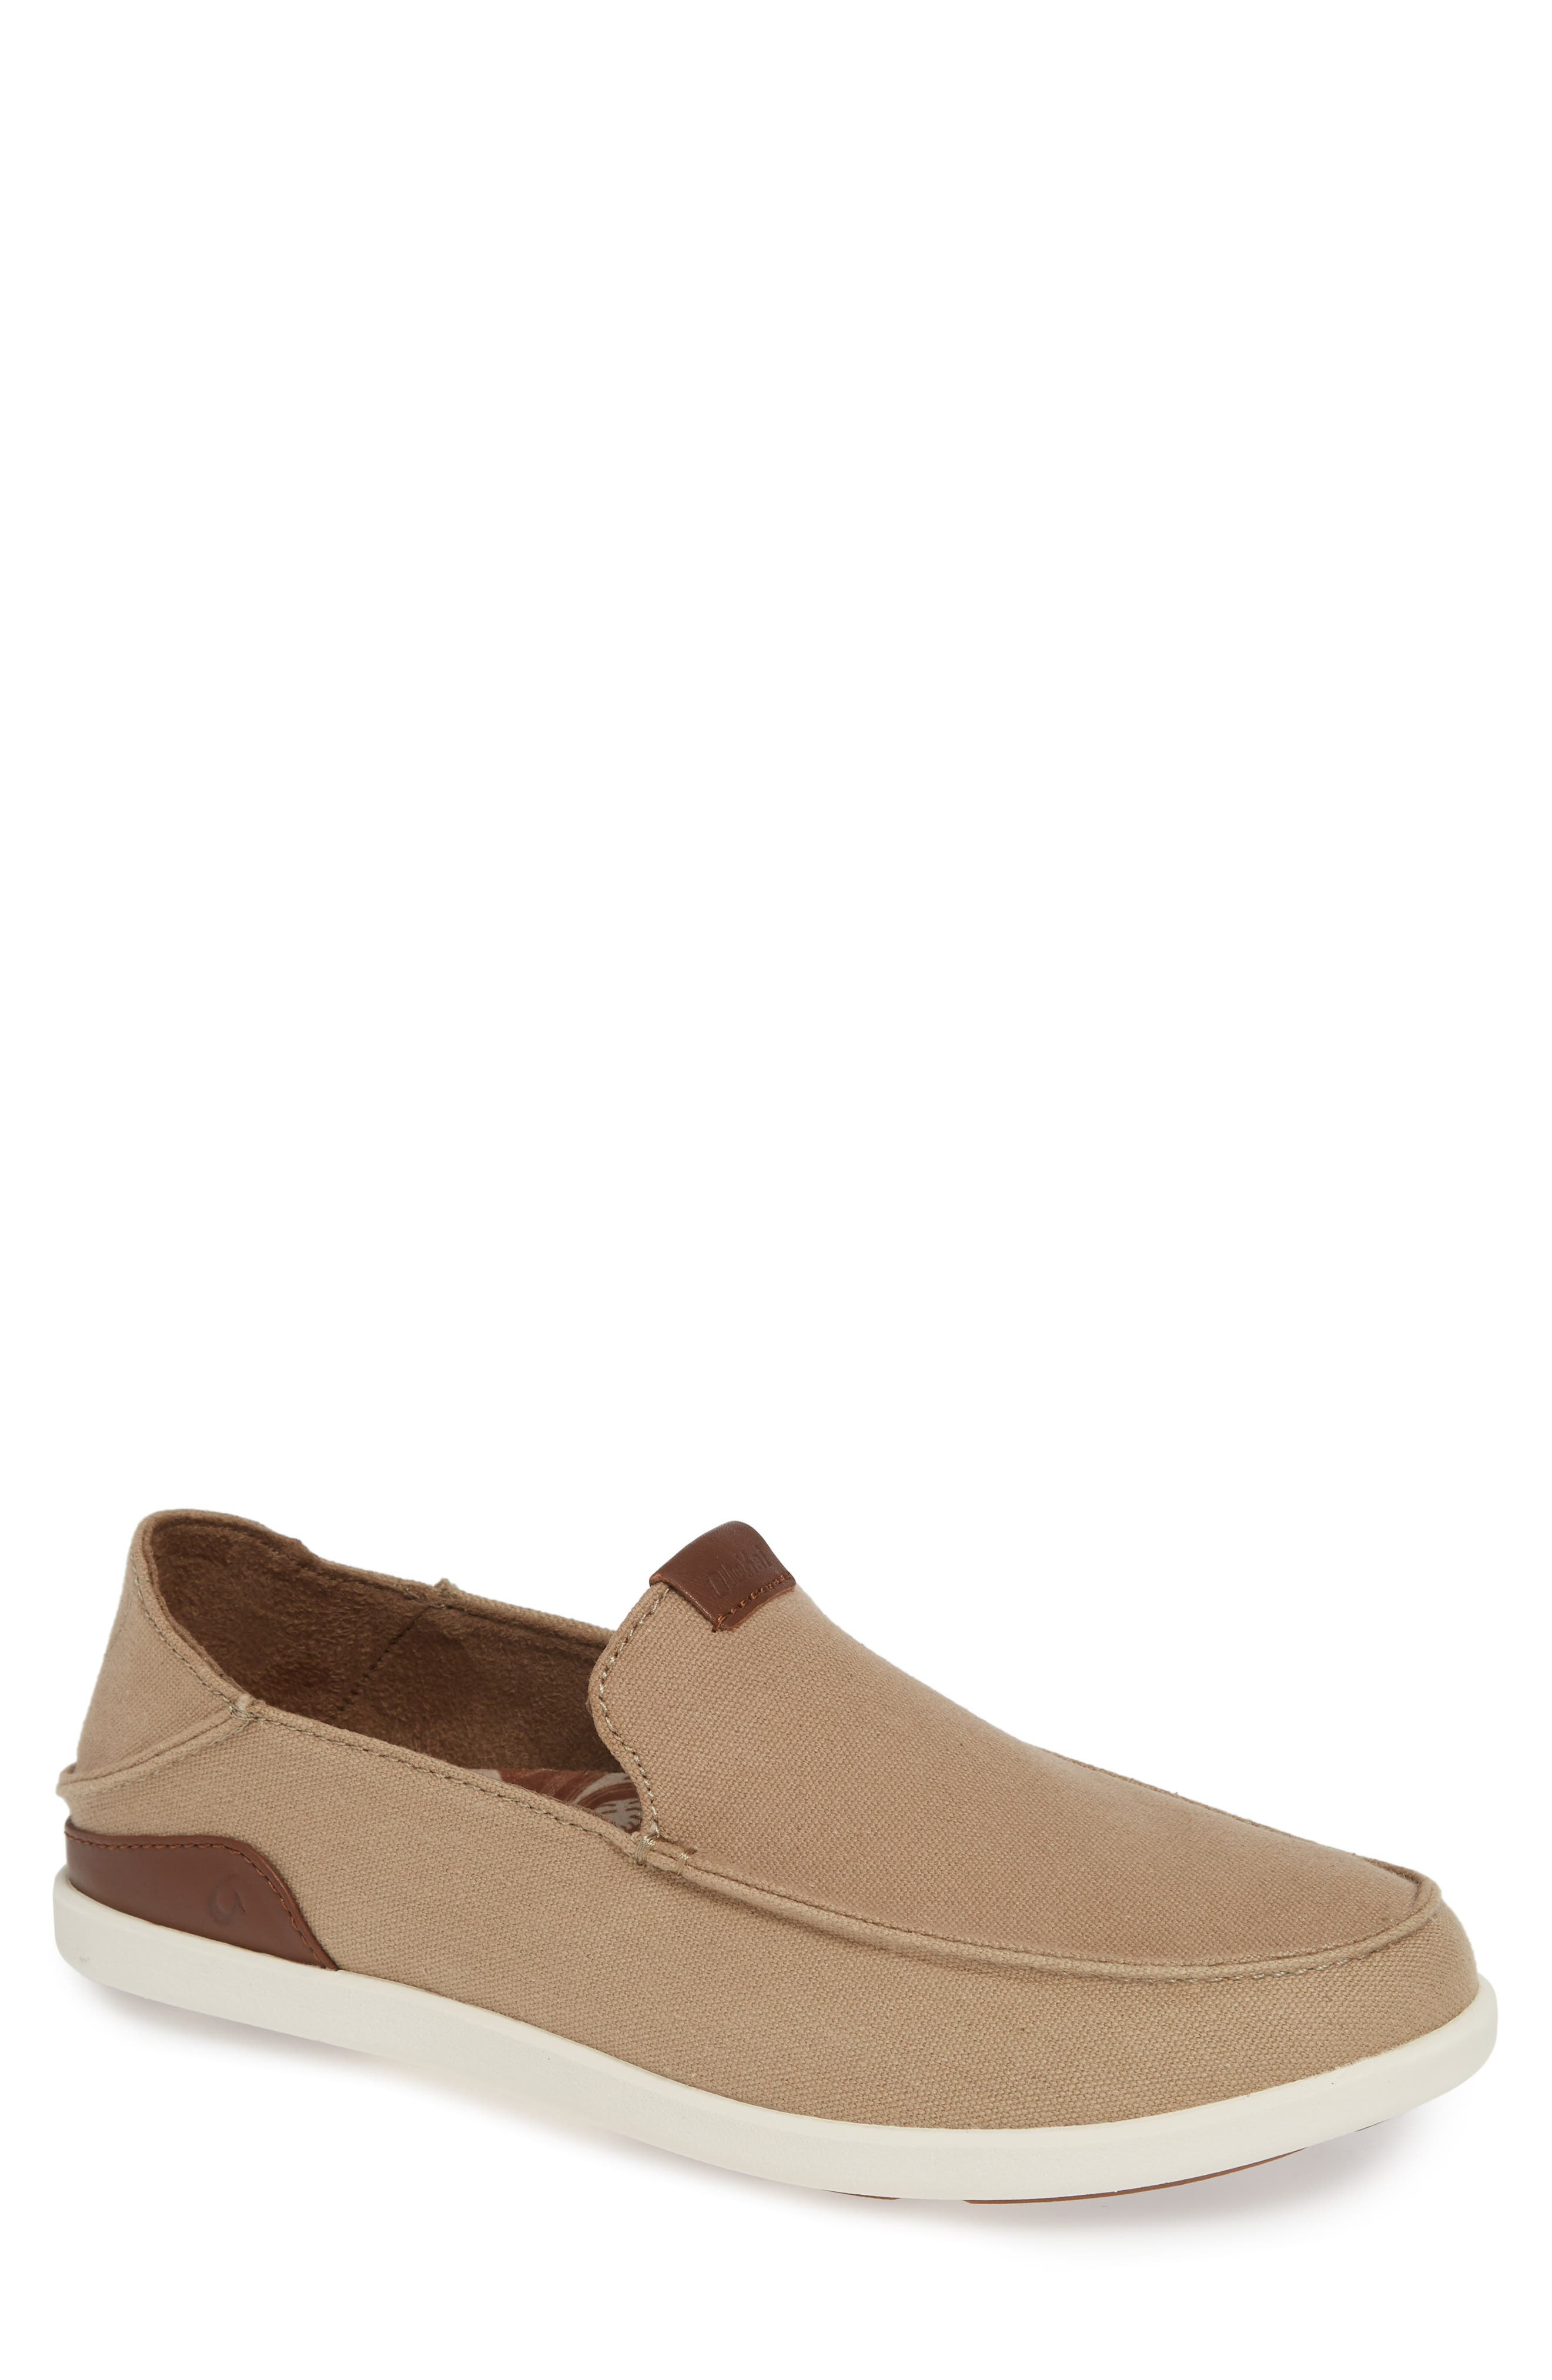 Sturdy canvas furthers the casual, easy-to-wear comfort of a classic slip-on crafted with a smart Drop-In Heel for easy conversion to a slide. Style Name: Olukai Manoa Slip-On (Men). Style Number: 5640174. Available in stores.